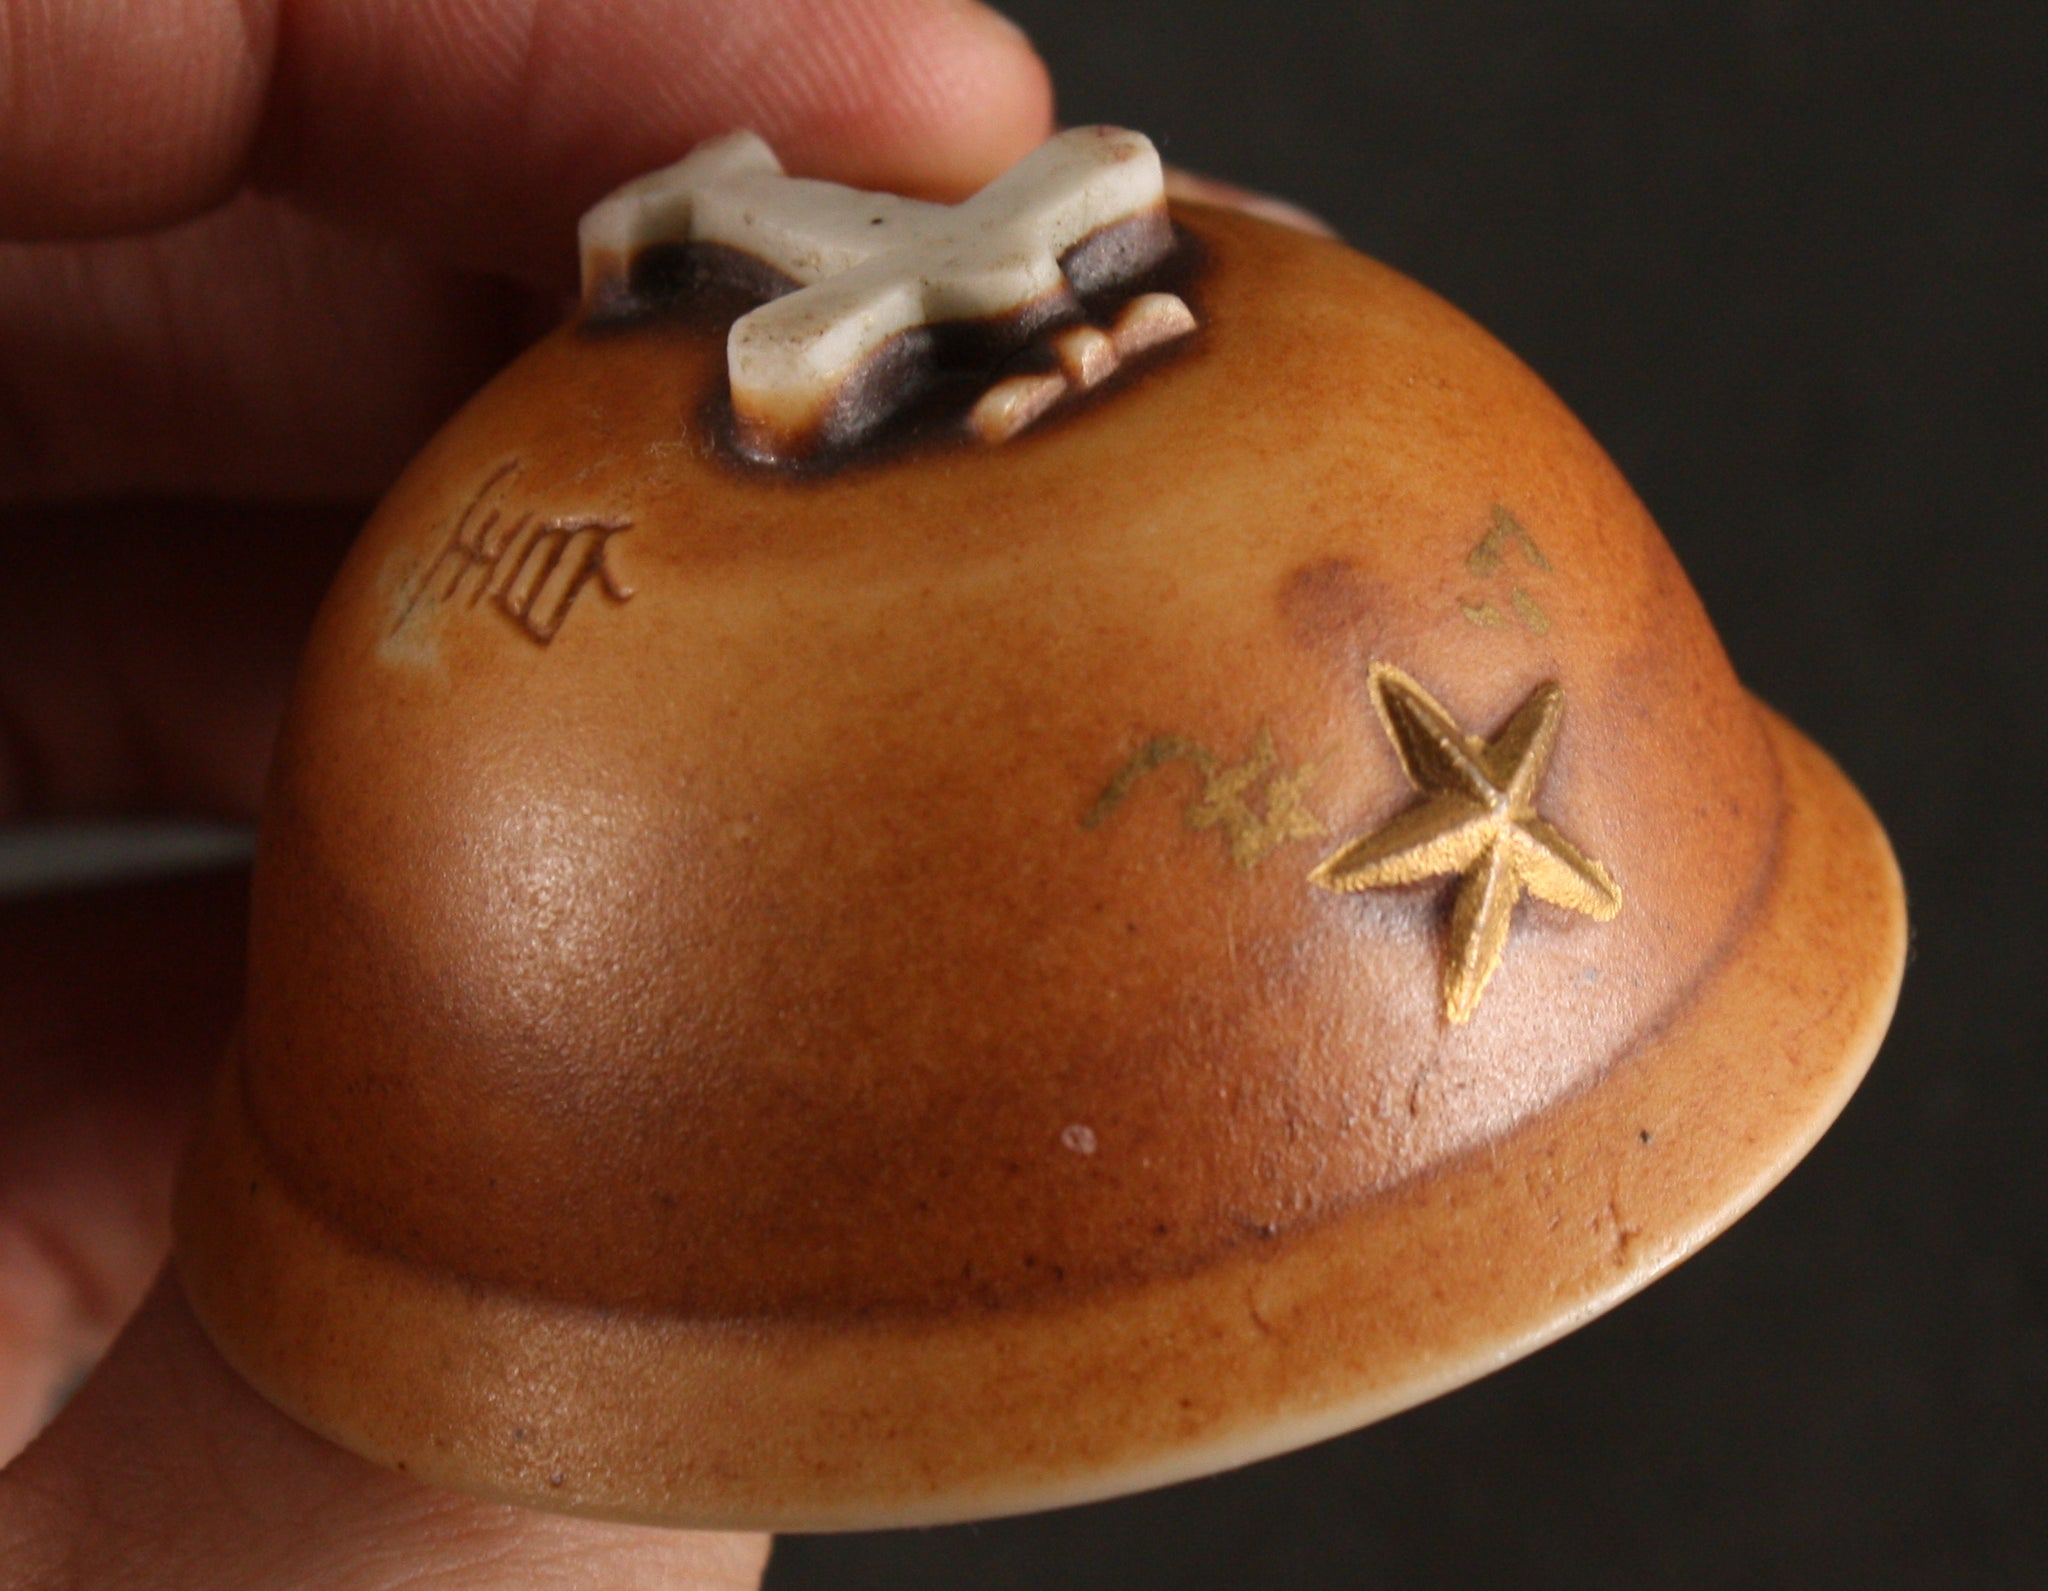 Antique Japanese Military Blossom Tree Plane Base Helmet Army Sake Cup